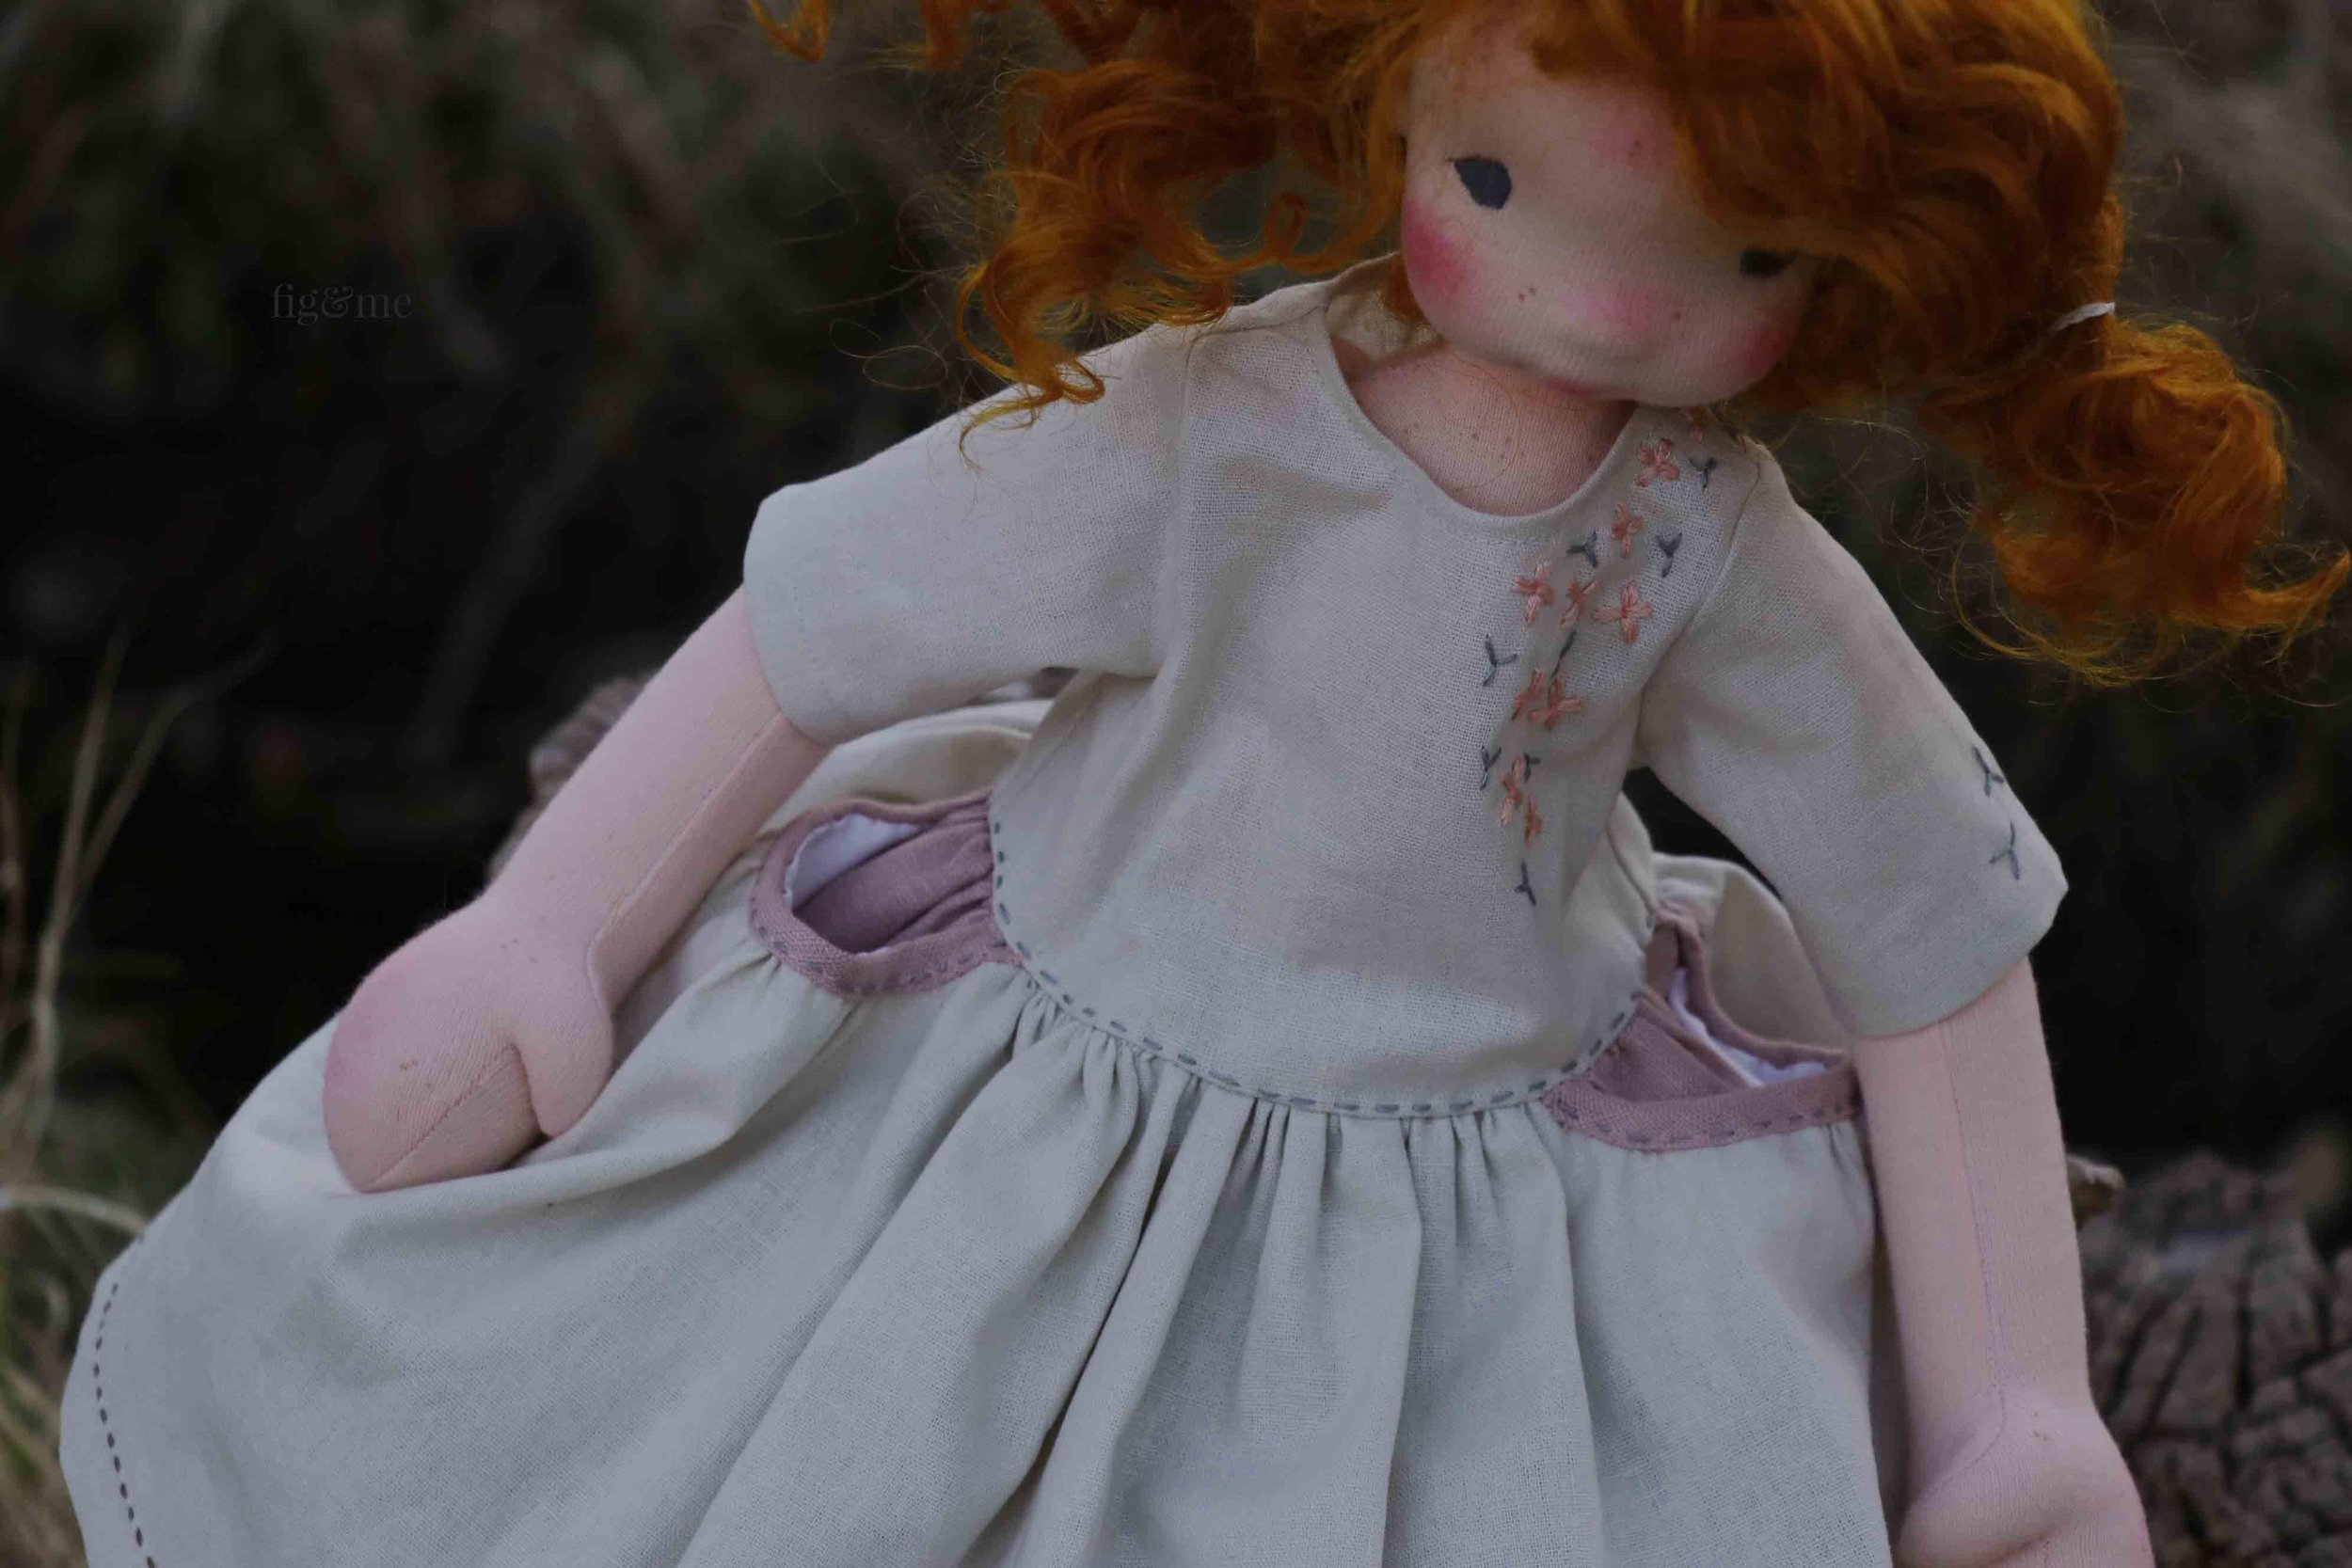 Maggie in her linen dress, by Fig and Me.